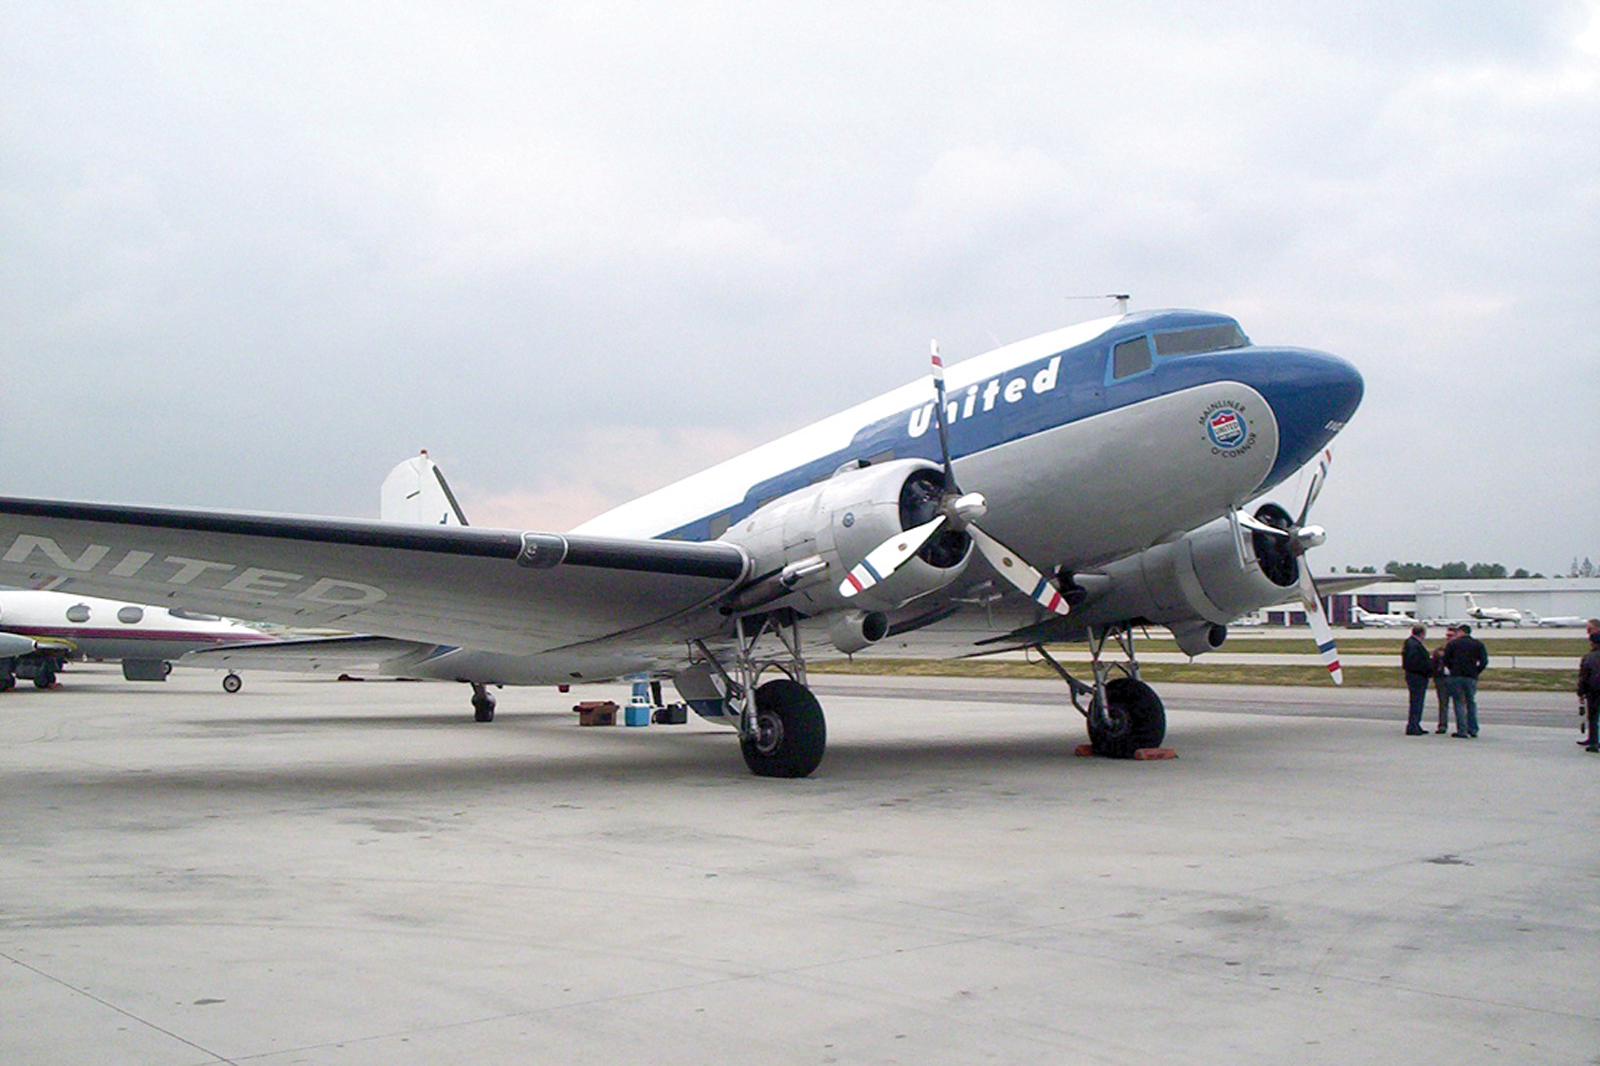 "Flight 70"" Commemorates the 70th Anniversary of the DC-3 and New Monument"